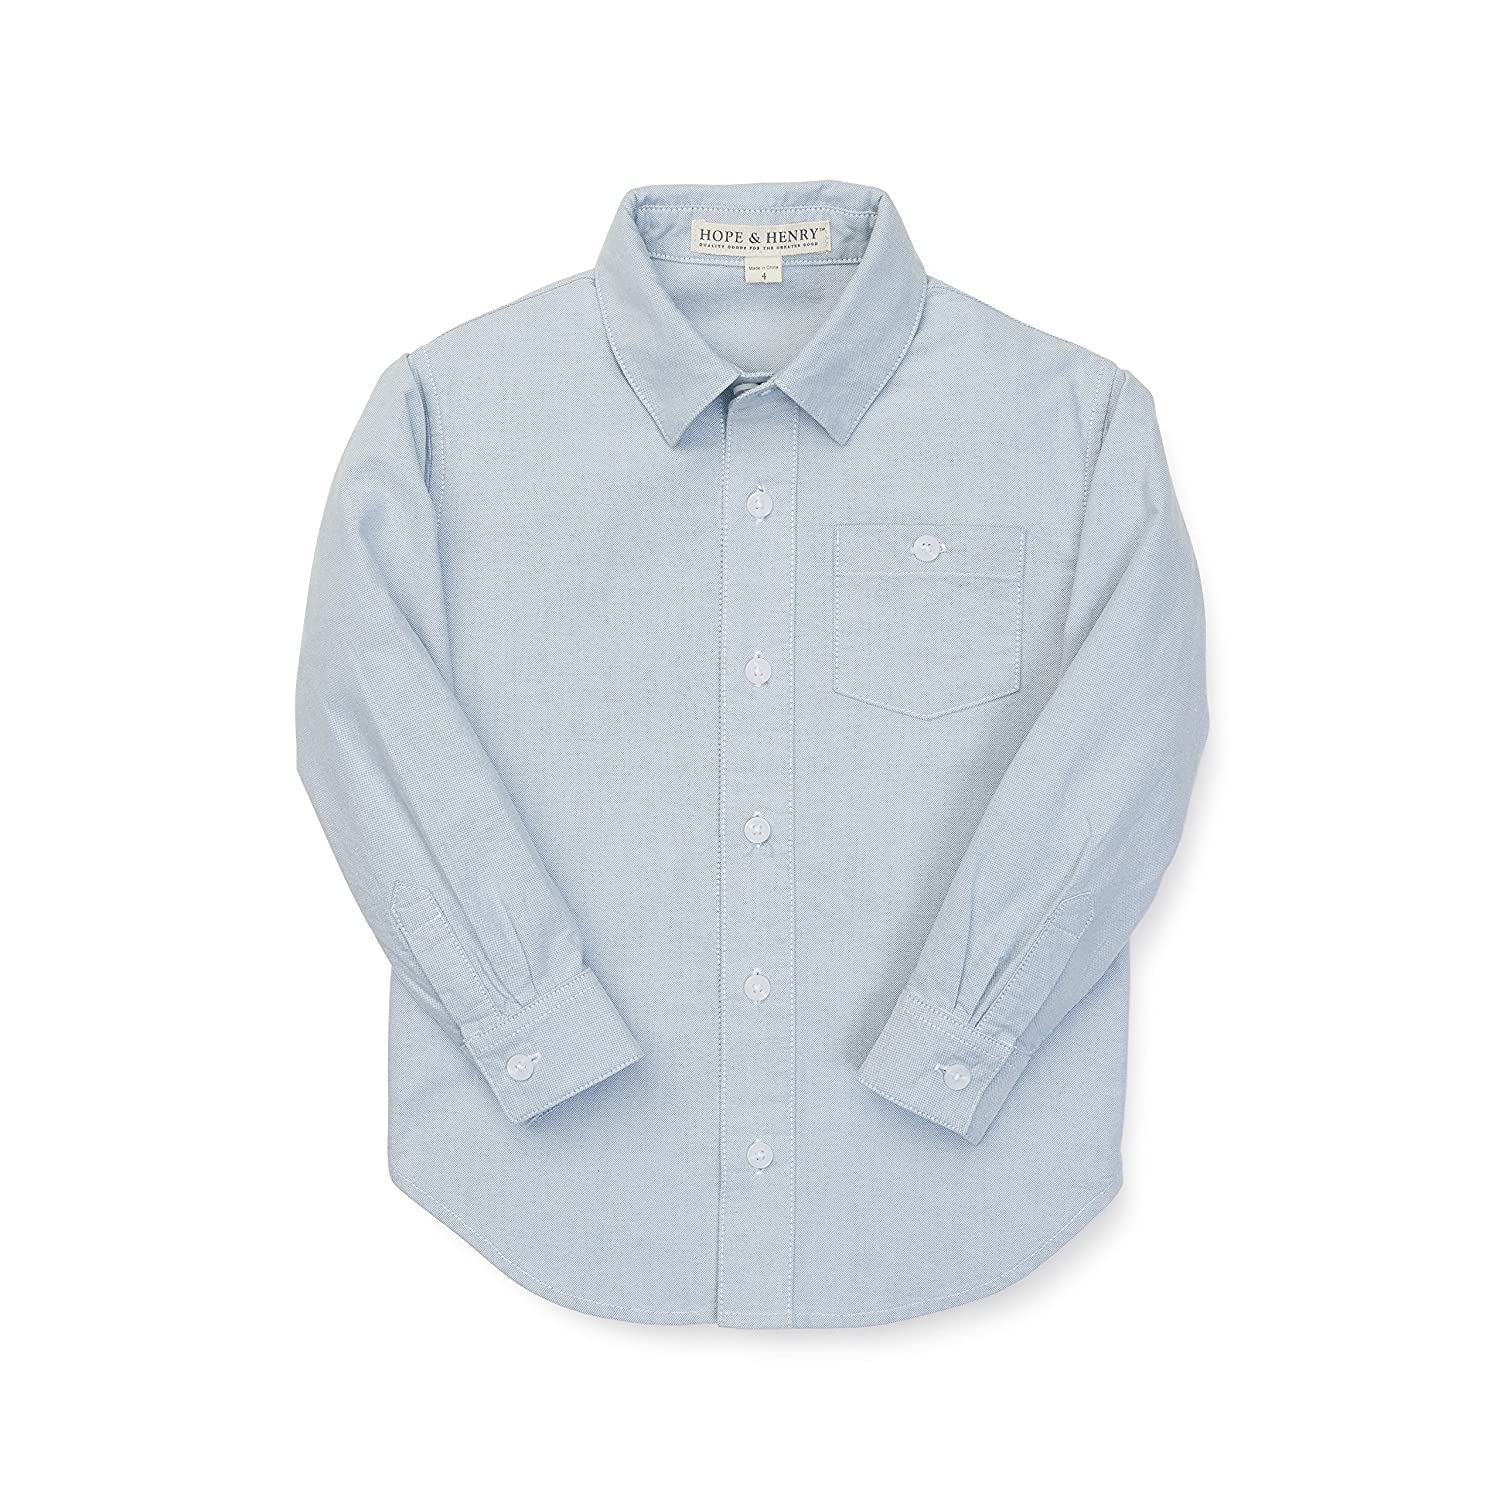 Hope & Henry Boys' Oxford Top Made with Organic Cotton